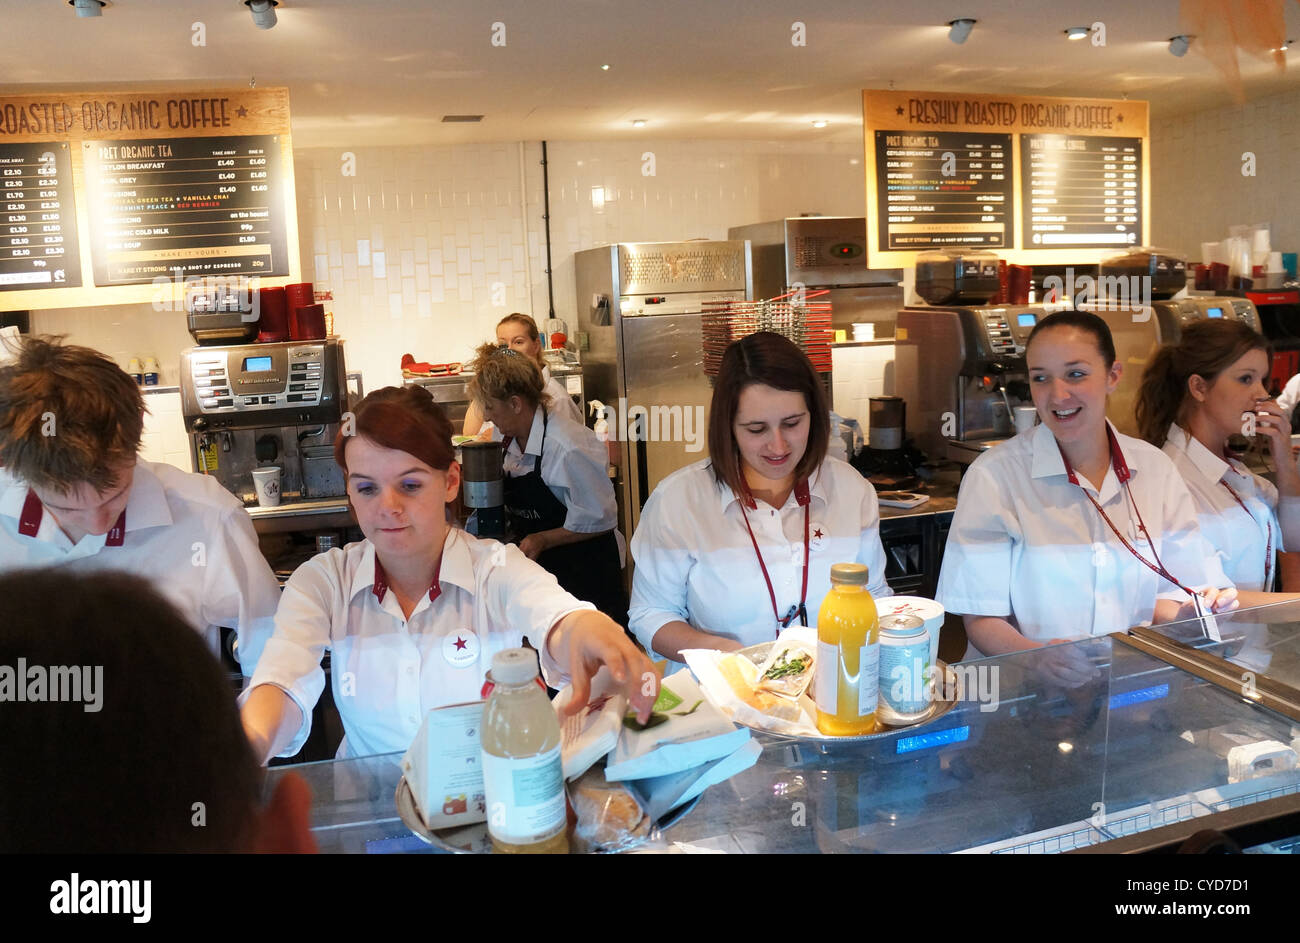 Prêt À Manger Stock Photos amp Prêt À Manger Stock Images Alamy Staff Serving At Pret A Manger Sandwich Shop In Uk CYDD PrCAAt CA Manger